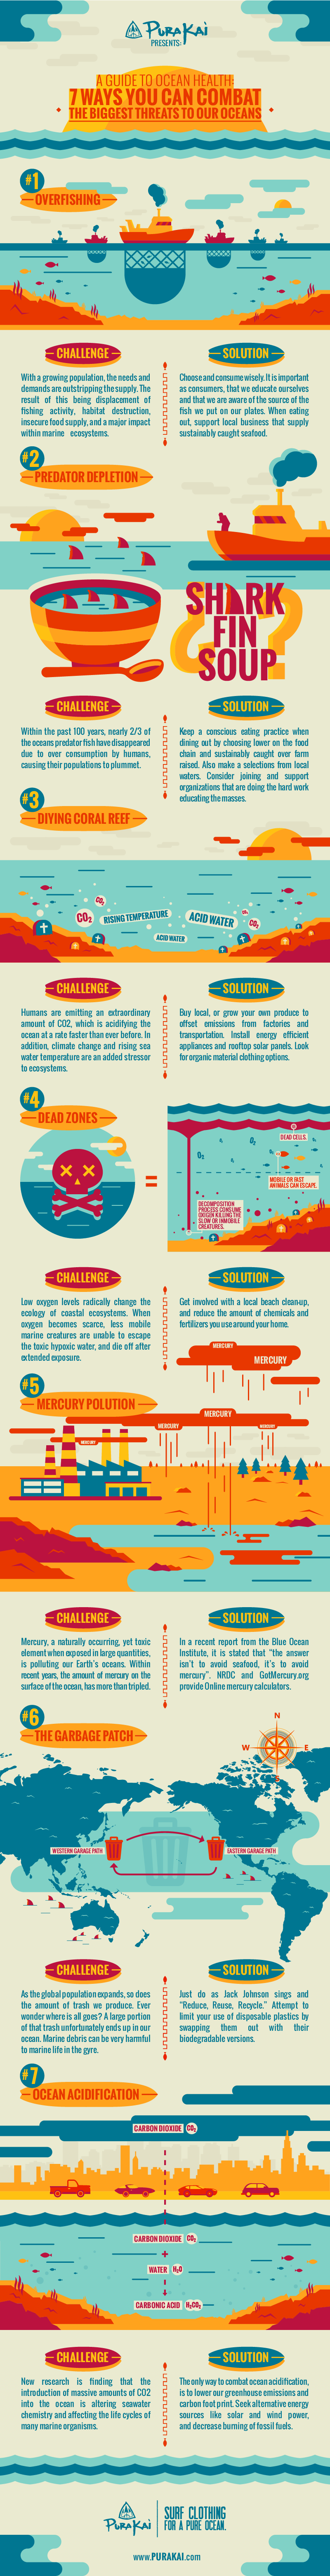 a-guide-to-oceans-health